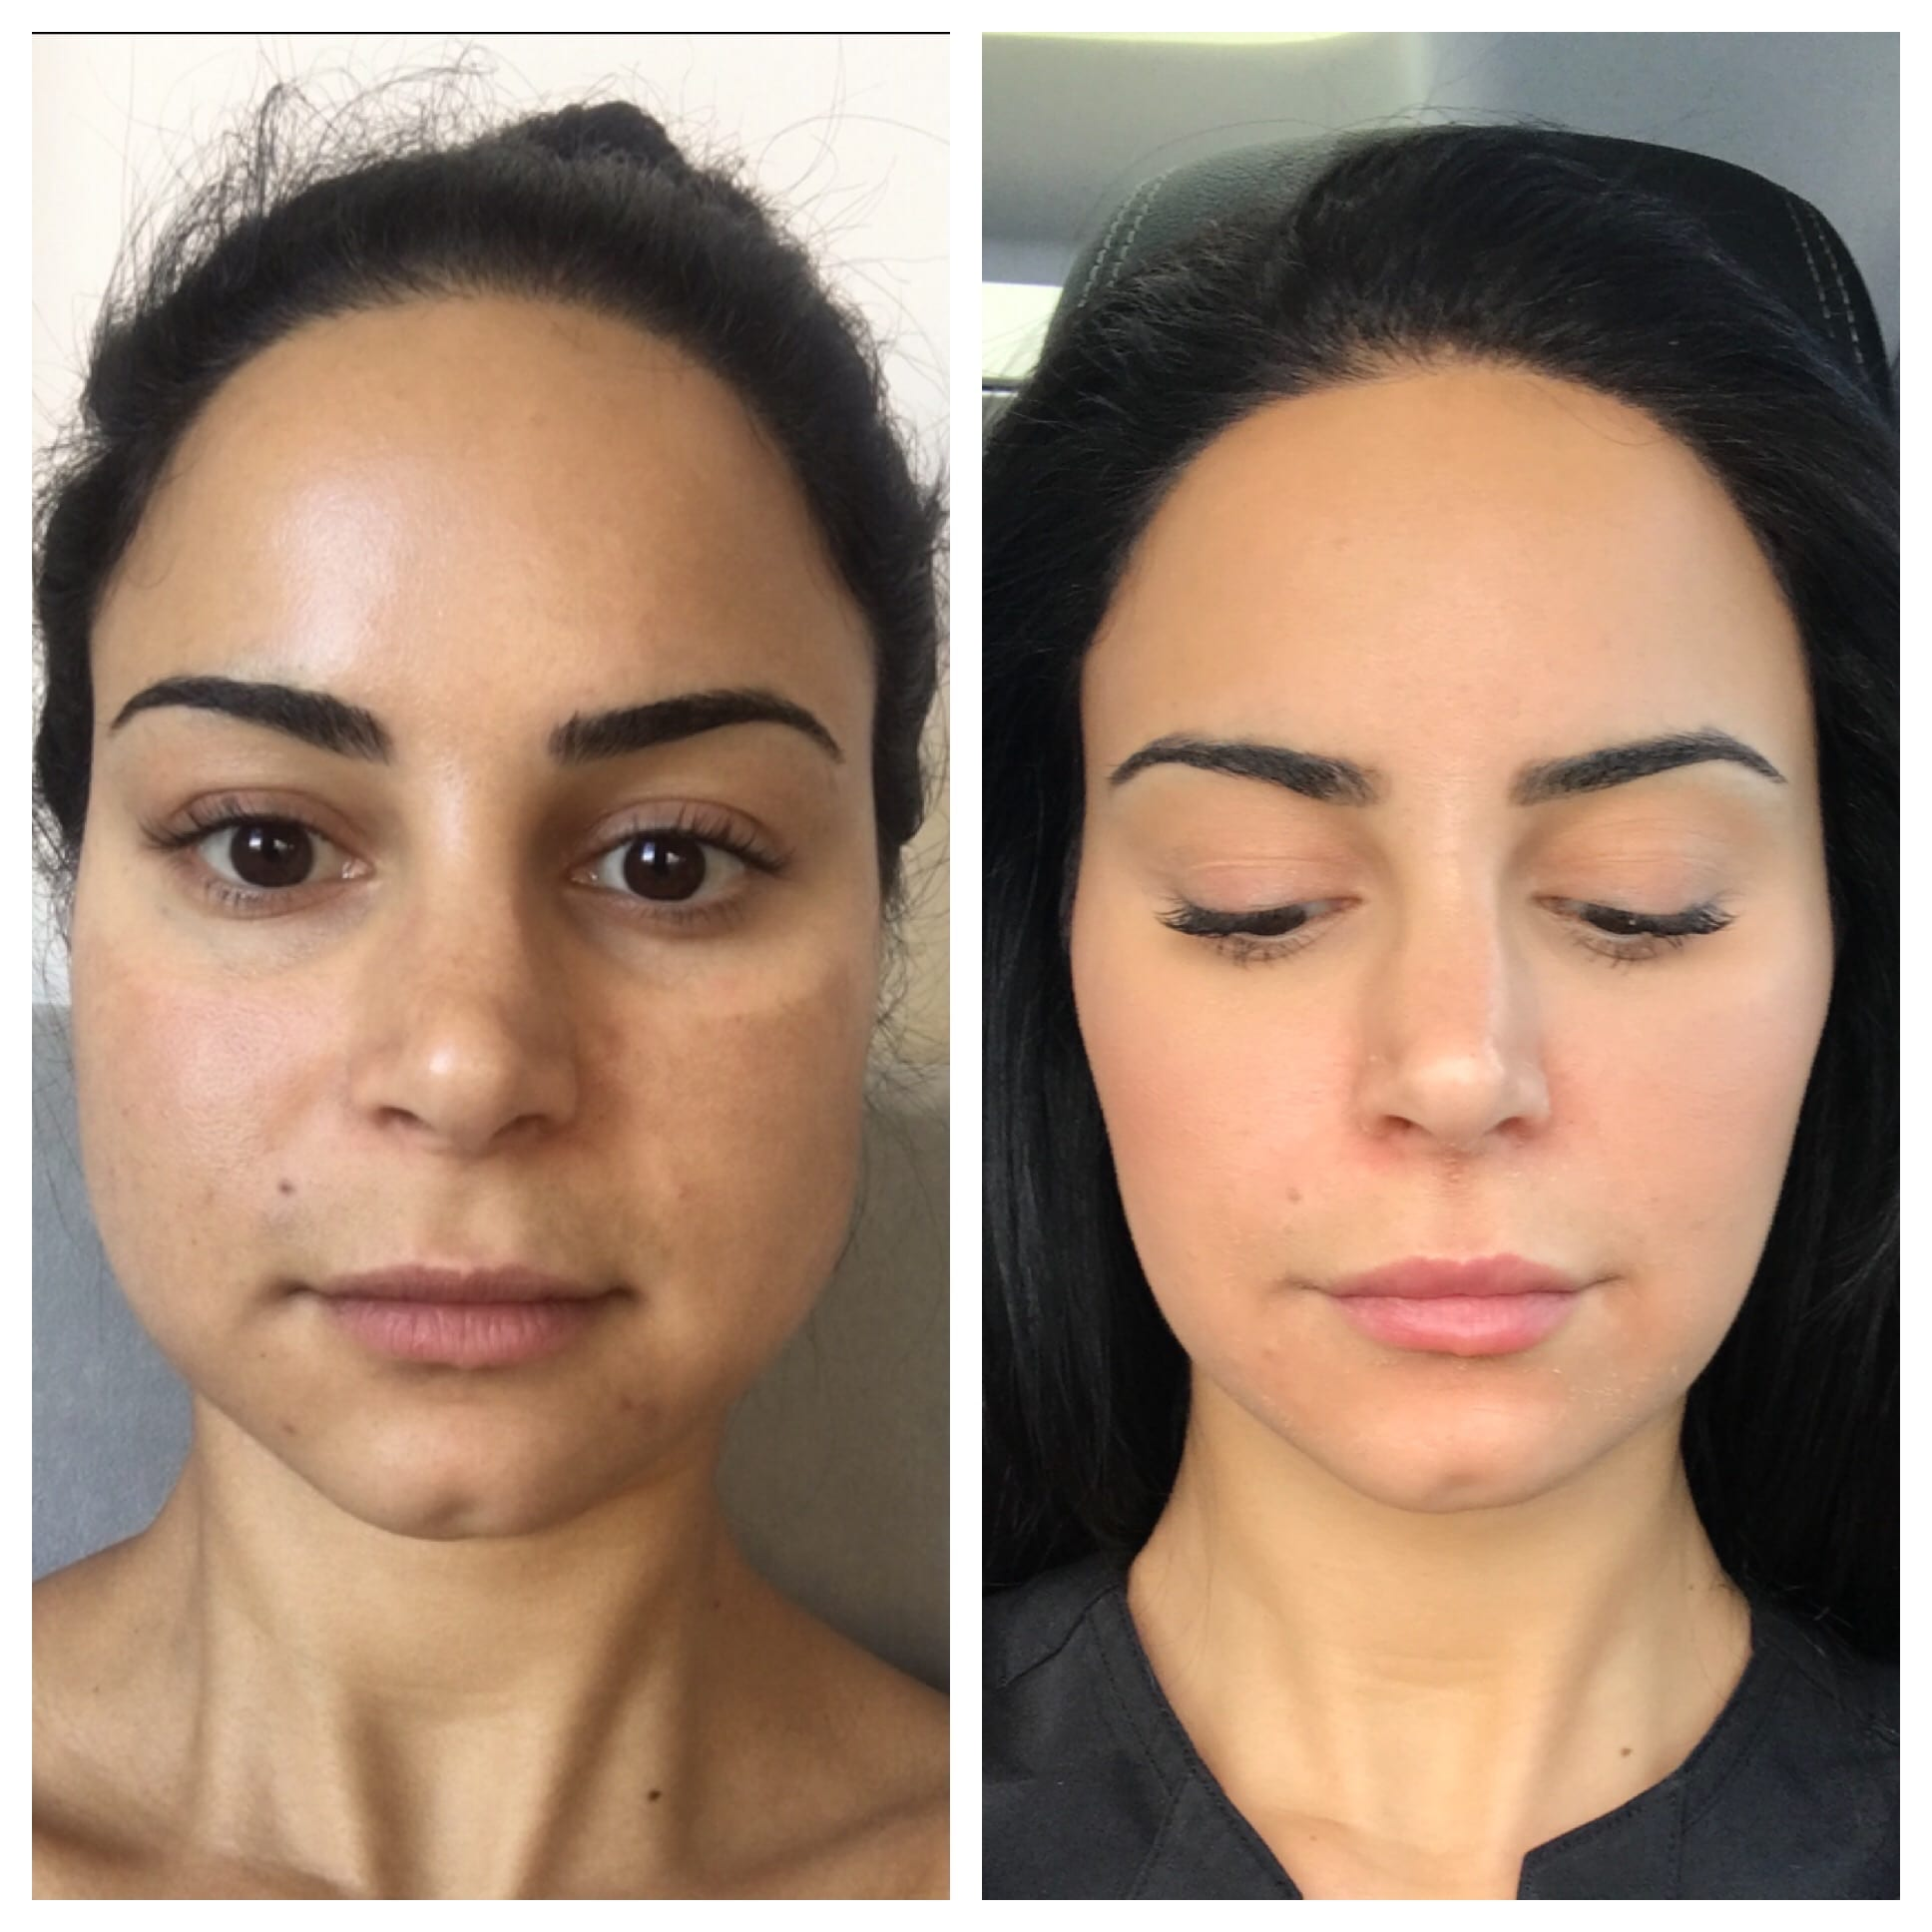 28 y/o F and Founder of Beauty Boost, 3 months after receiving 40 units of botox to her masseters for jawline slimming.